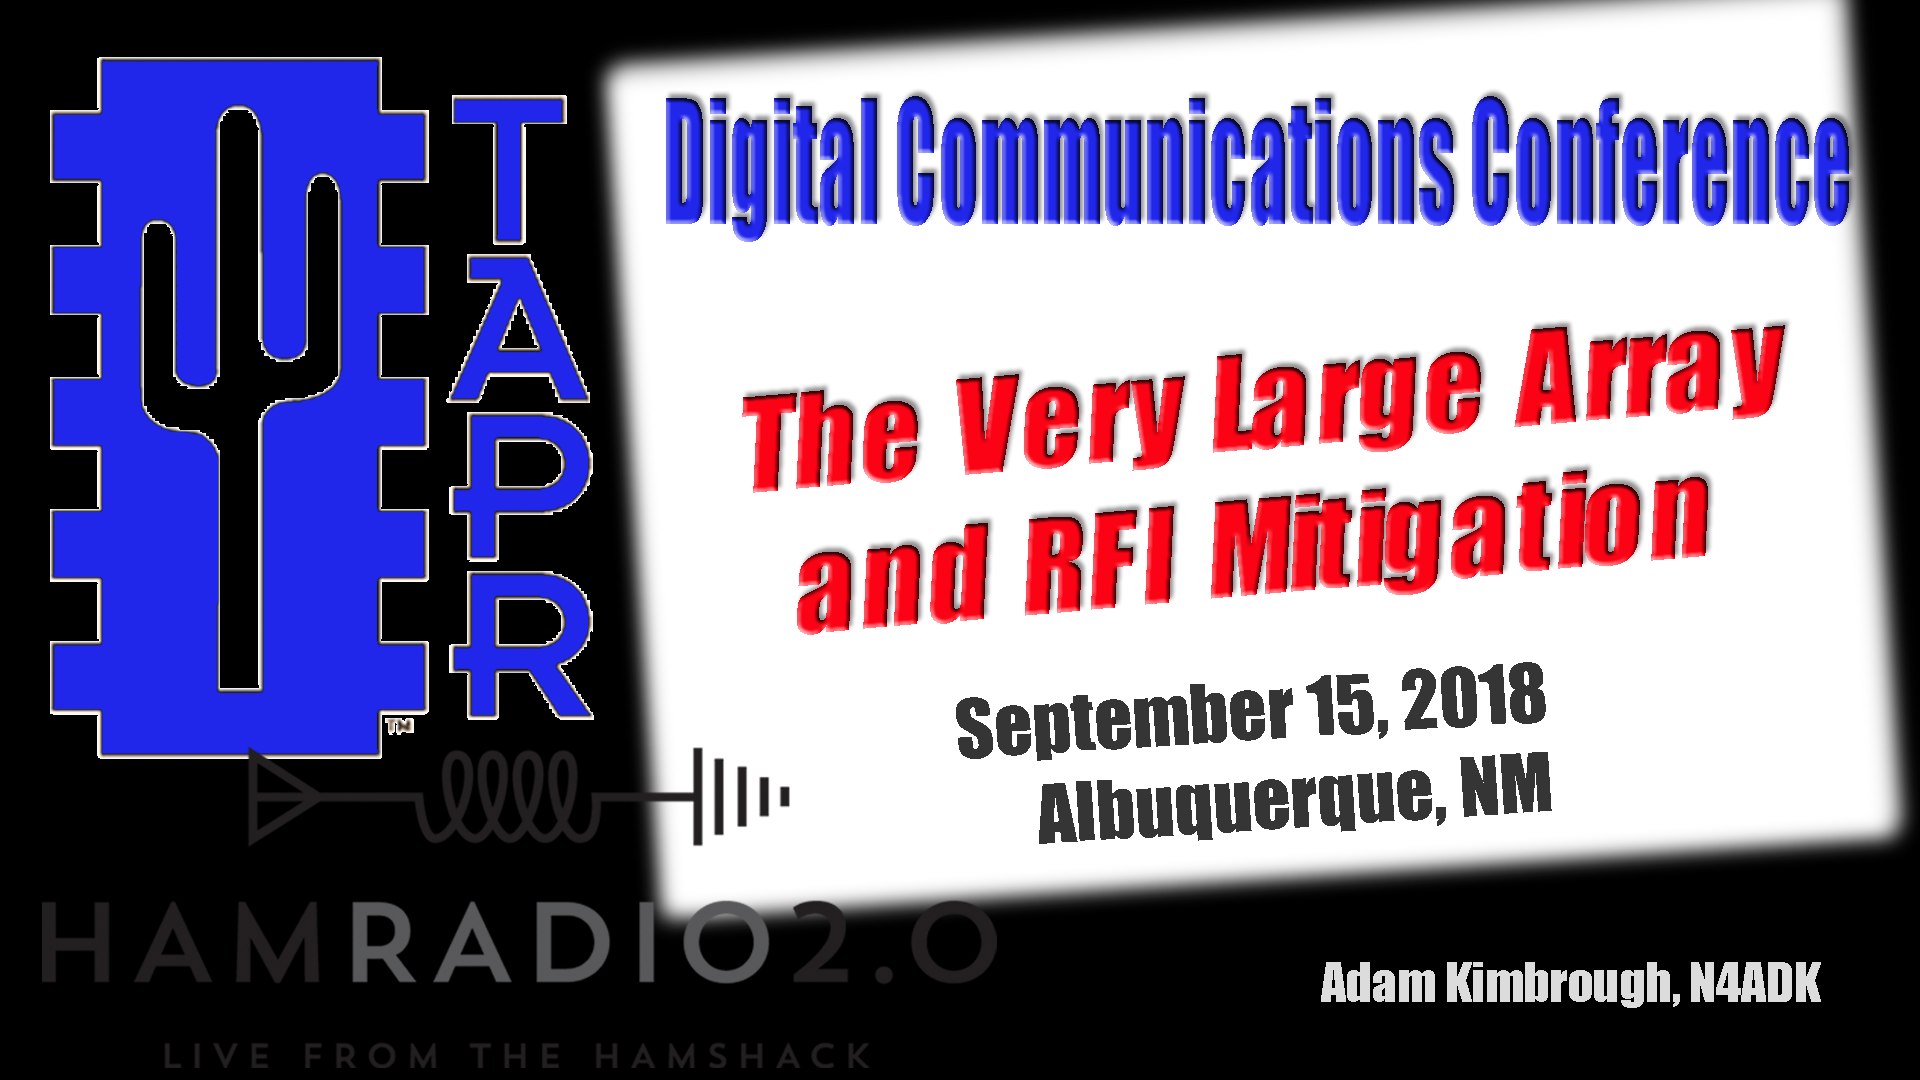 Episode 183: The Very Large Array and RFI Mitigation, TAPR DCC 2018